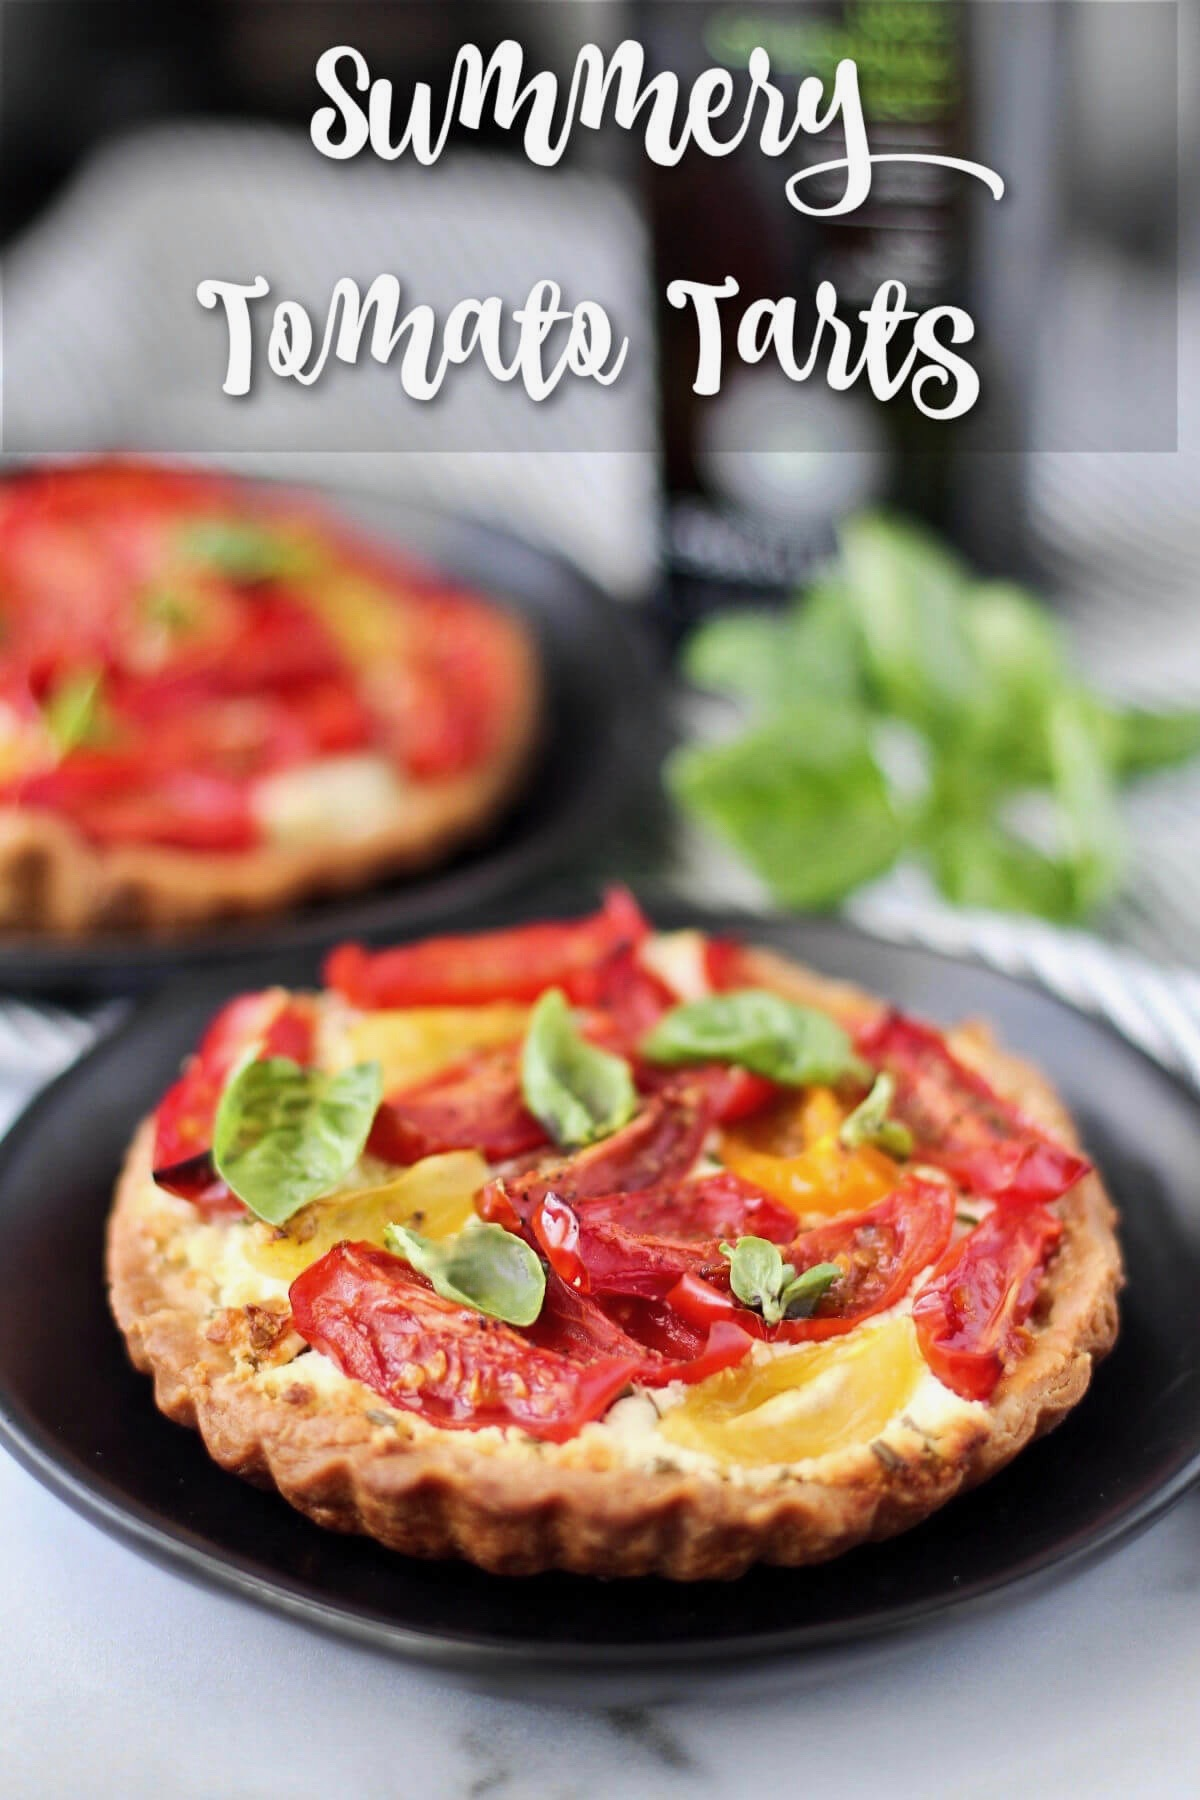 Tomato and Goat Cheese Tarts with Basil on top.